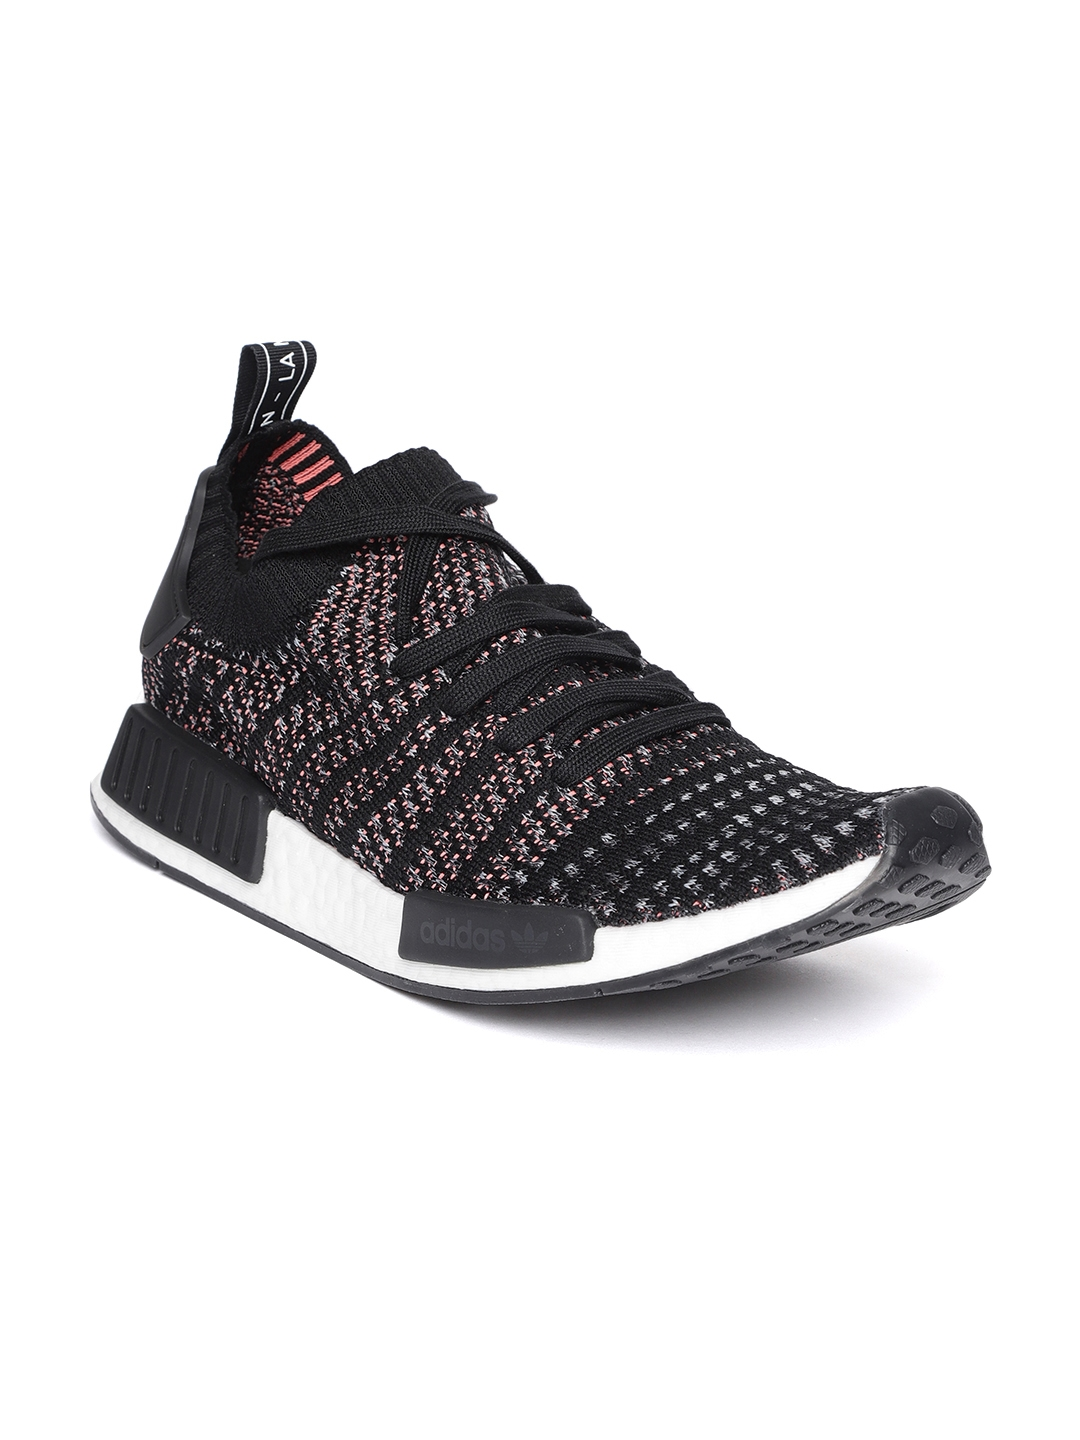 7cc197473 Buy ADIDAS Originals Men Black NMD R1 STLT Primeknit Sneakers ...